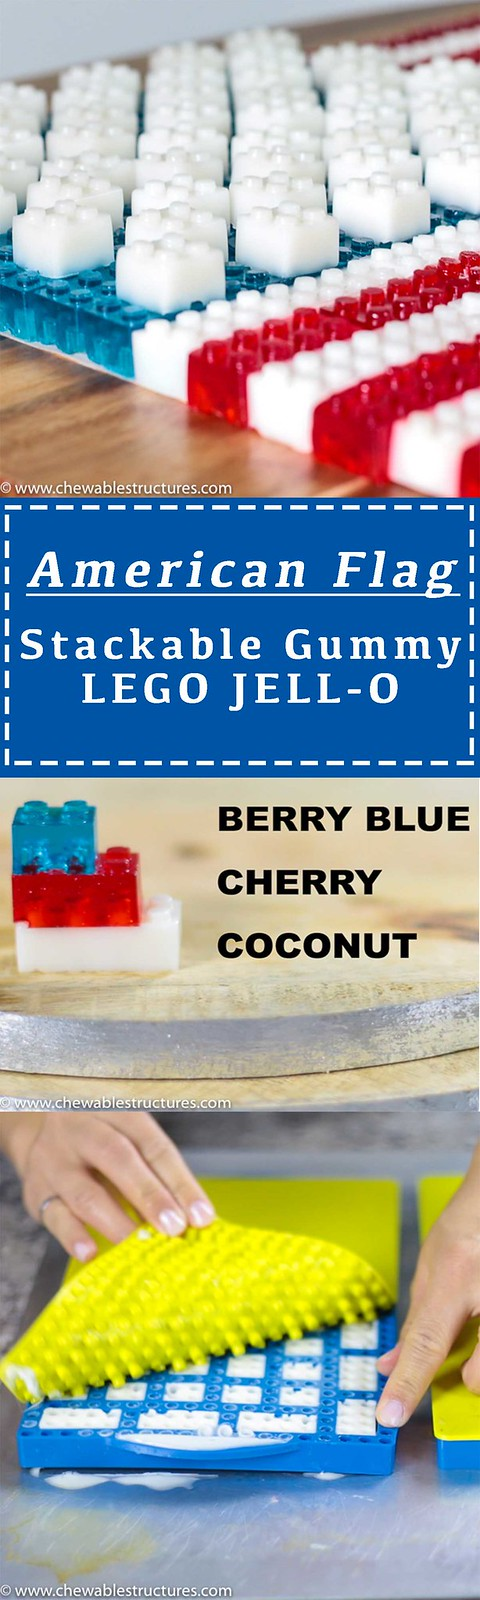 American Flag made of gummy LEGO JELLO candy.